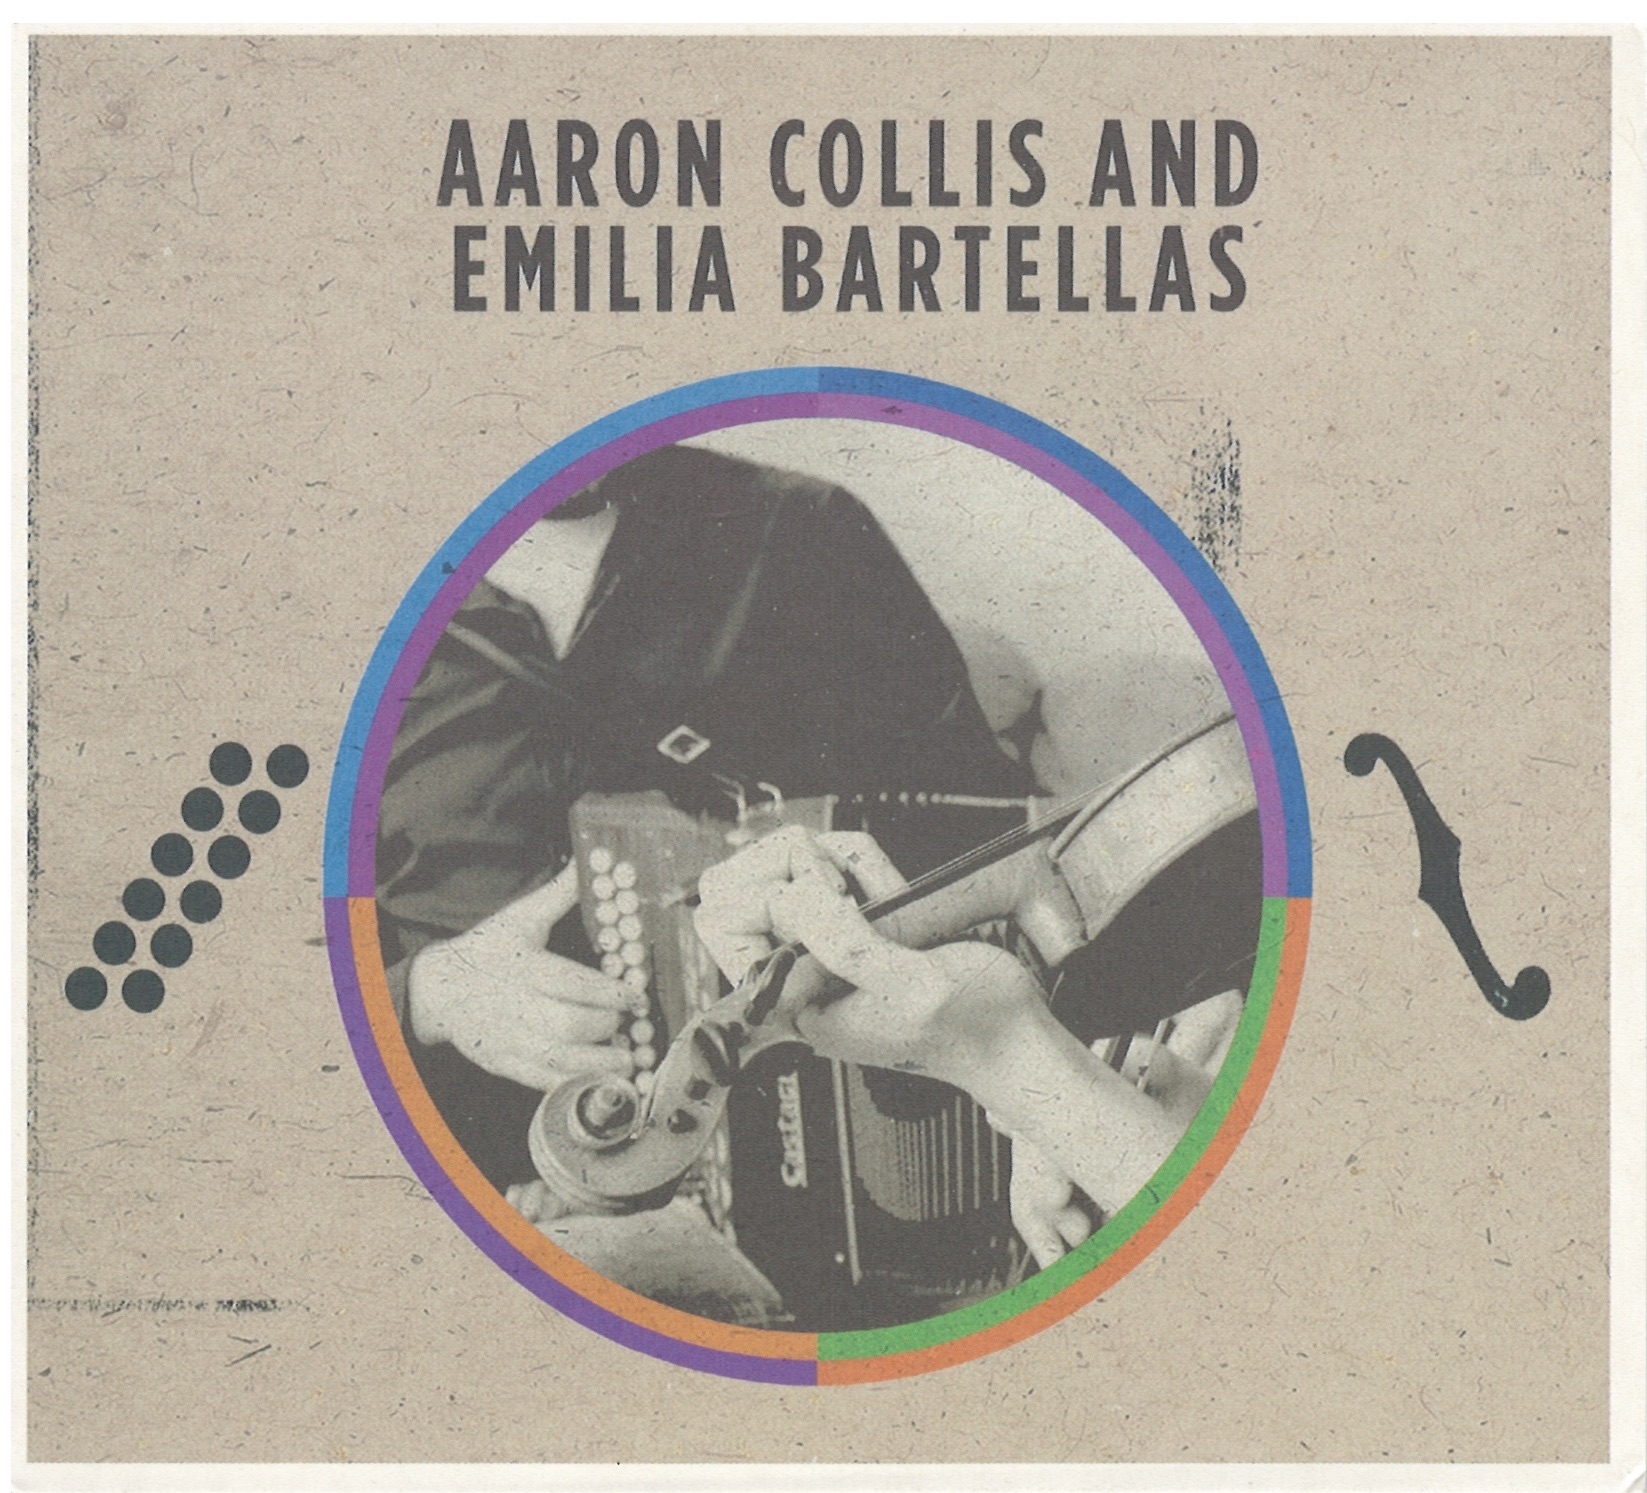 Aaron Collis and Emilia Bartellas